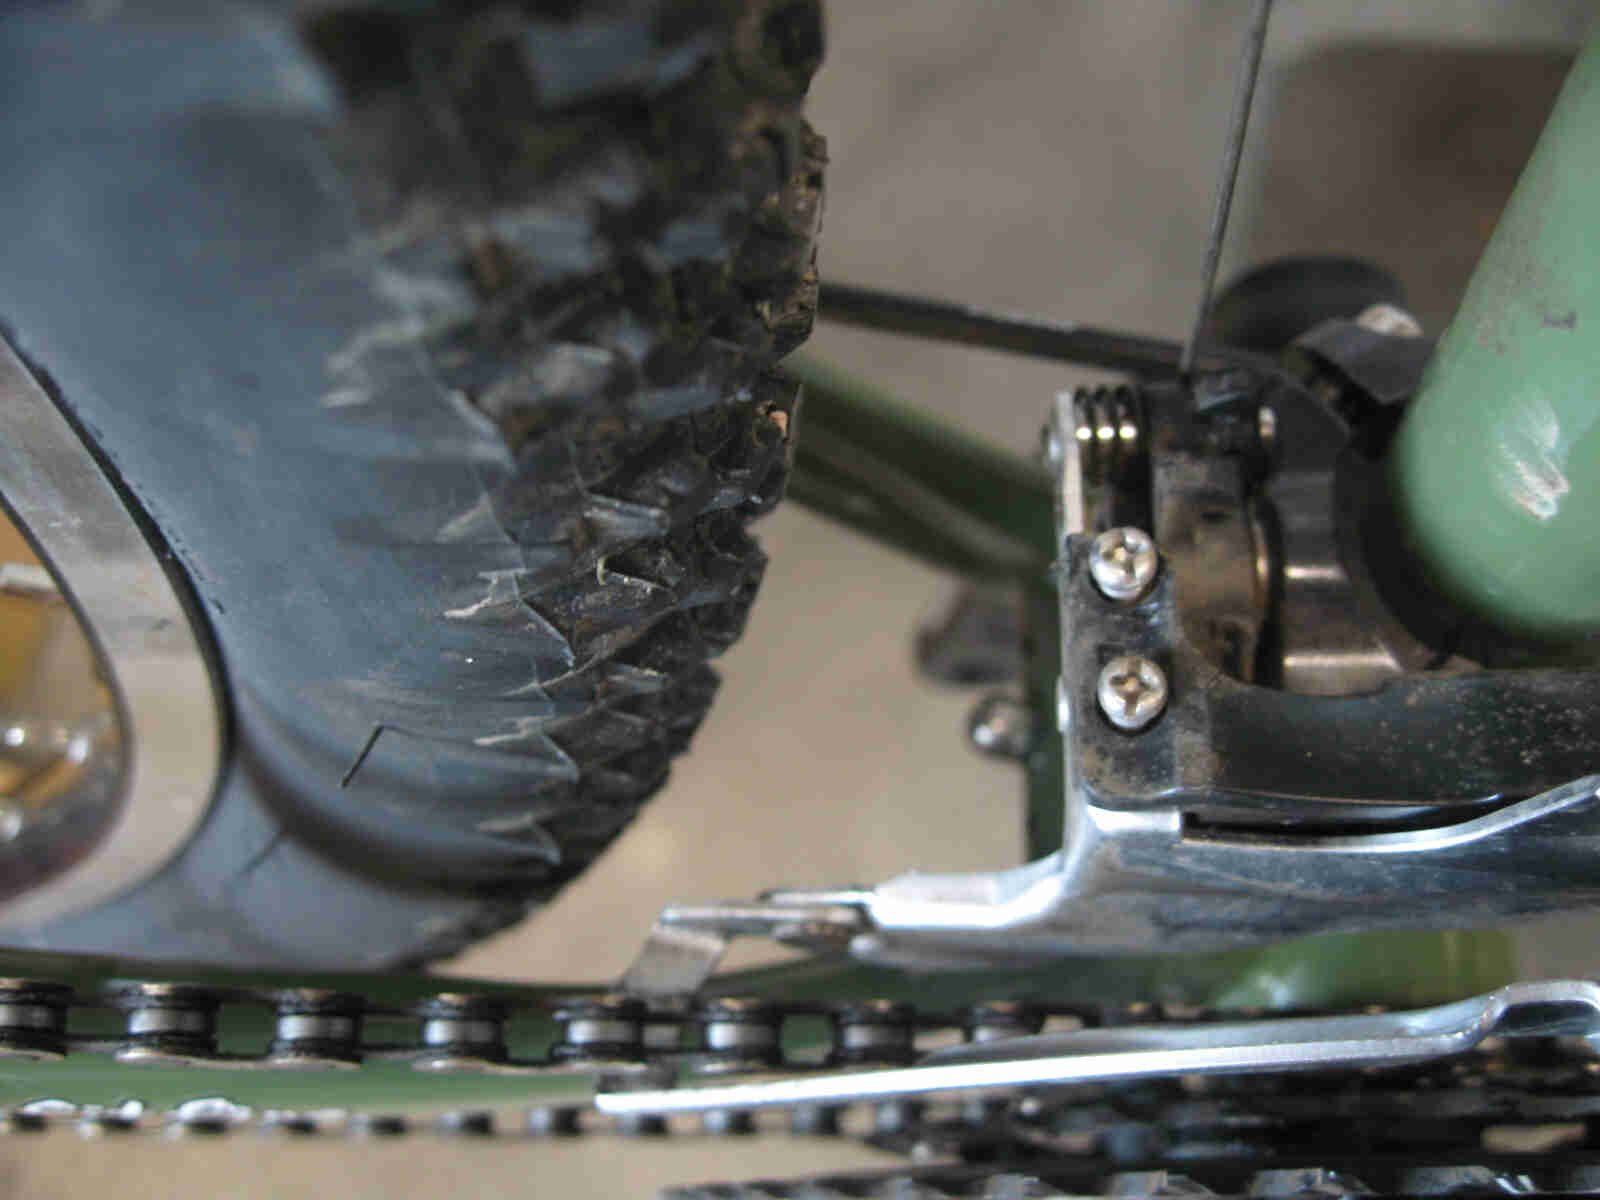 Surly Ogre bike - green -  crank and front derailleur detail - drive side close up view